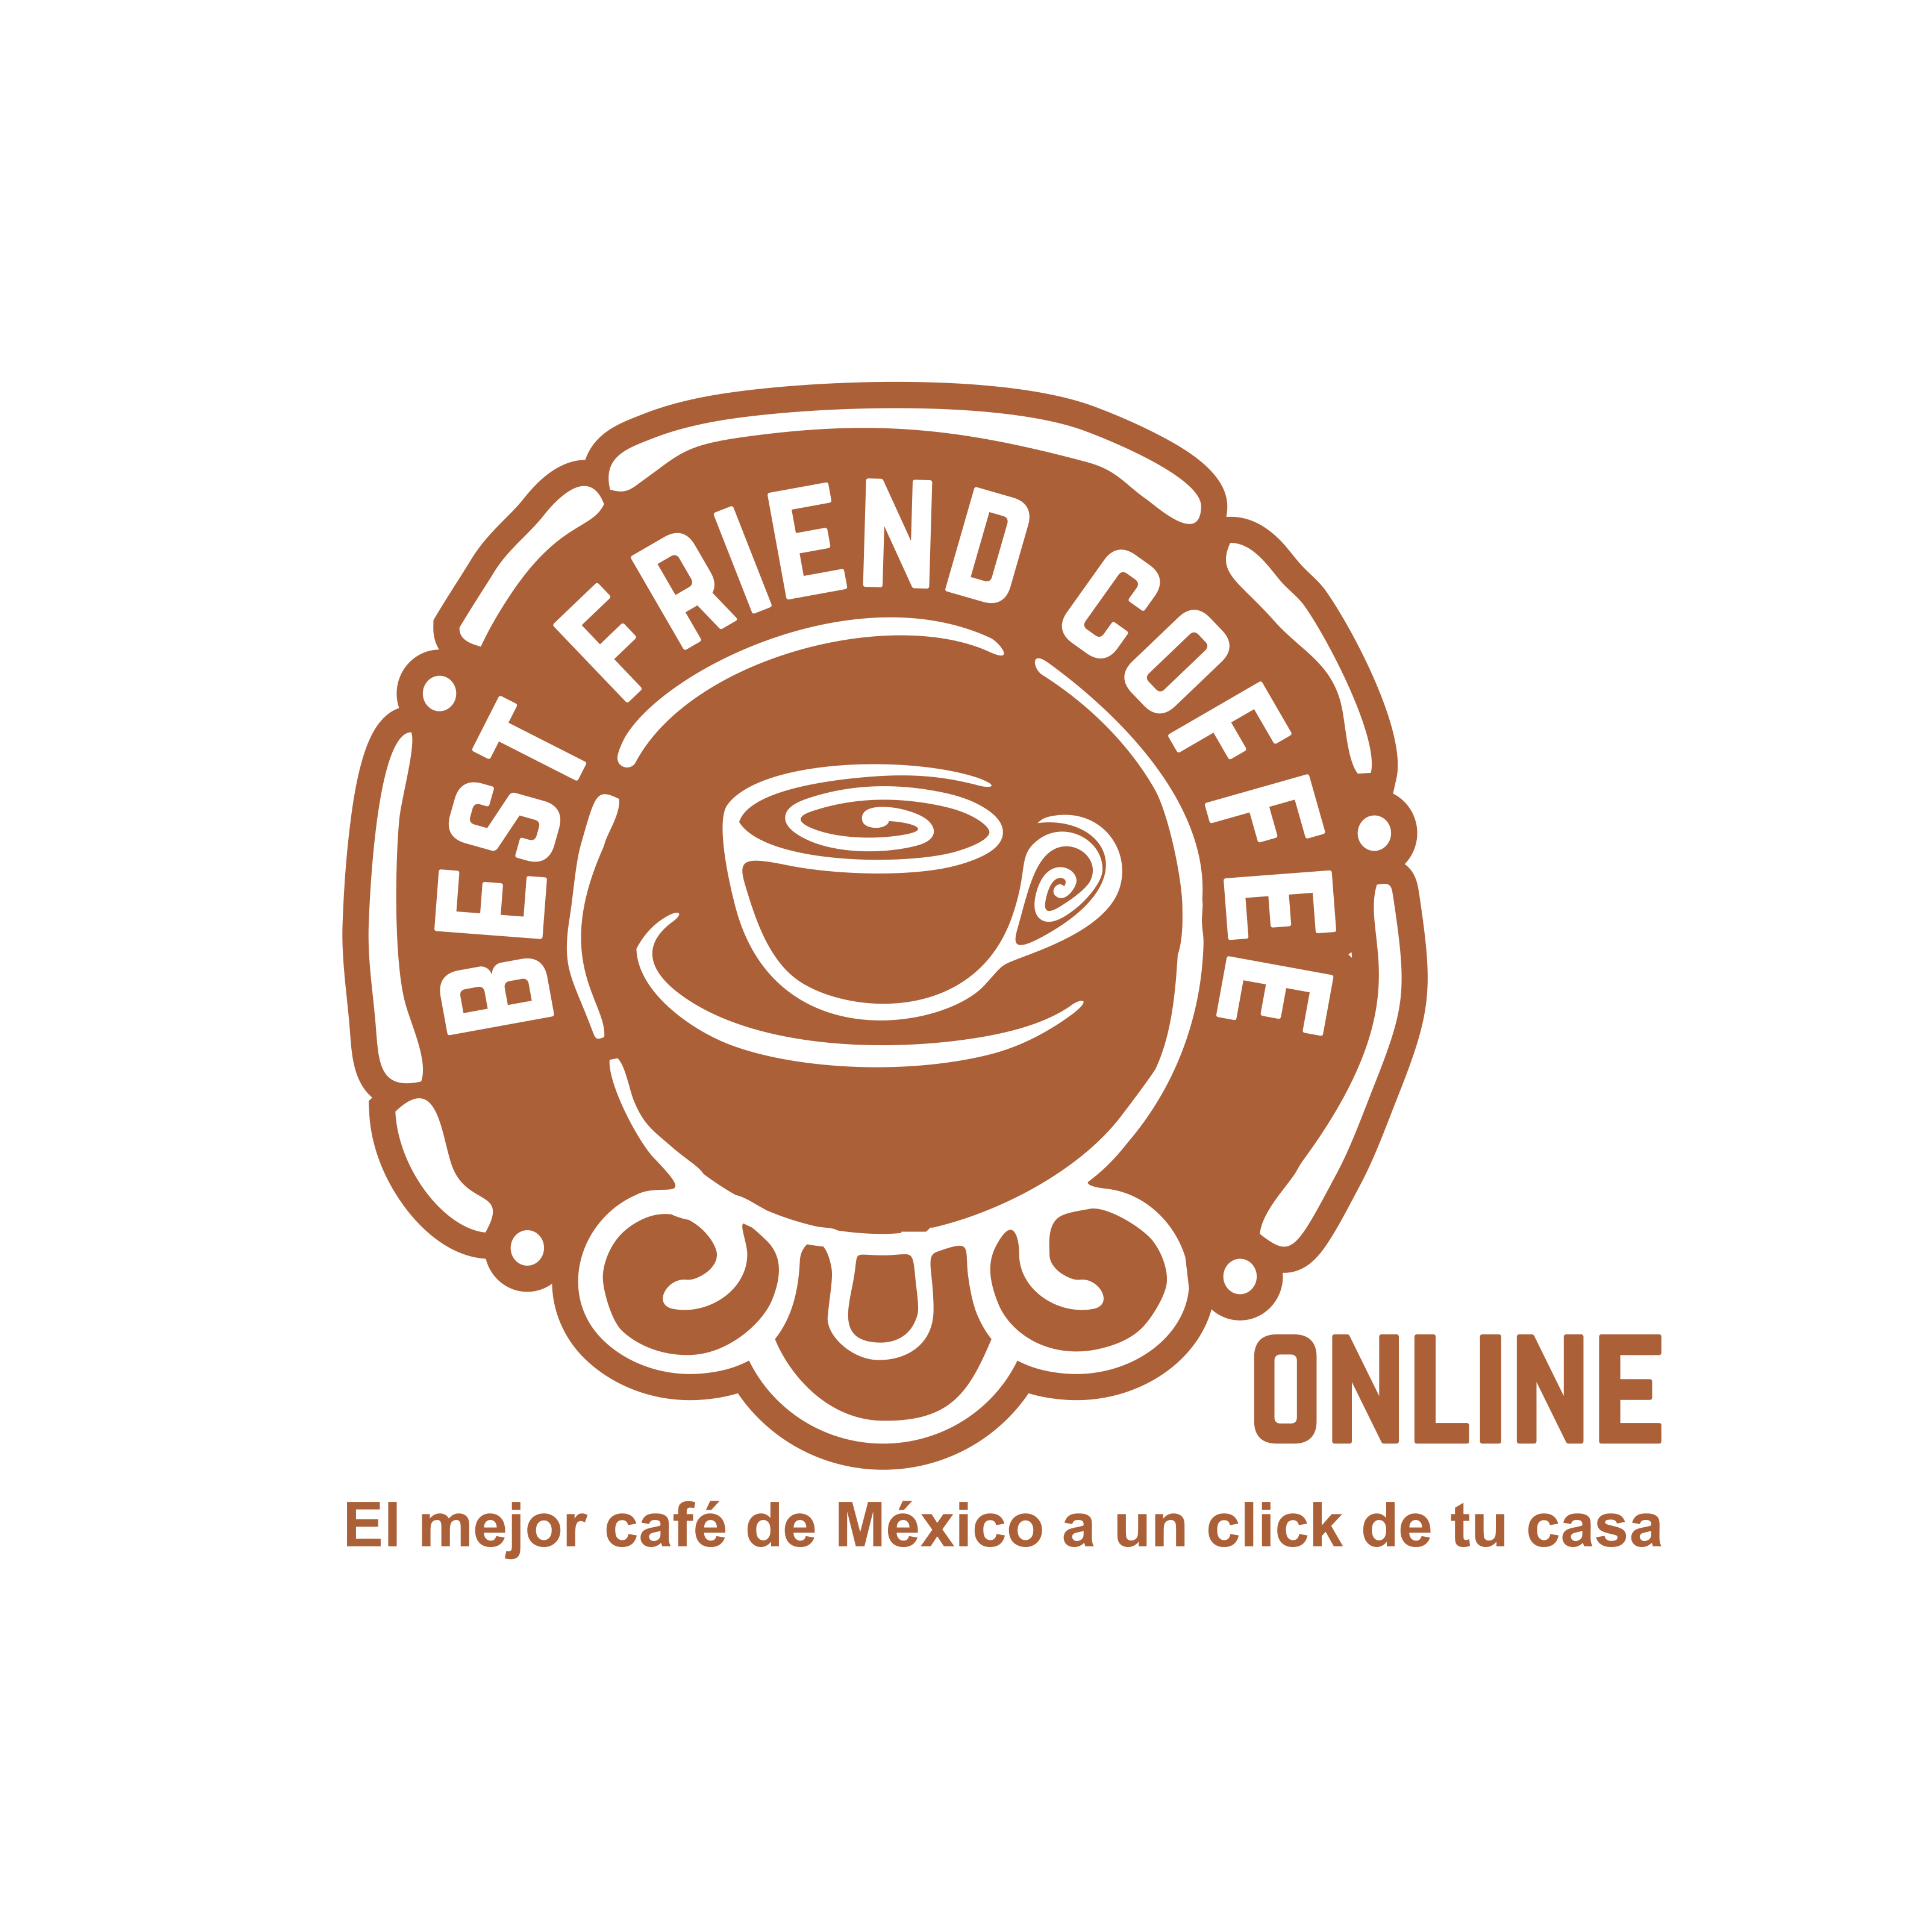 design a online logo for Best Friend Coffee